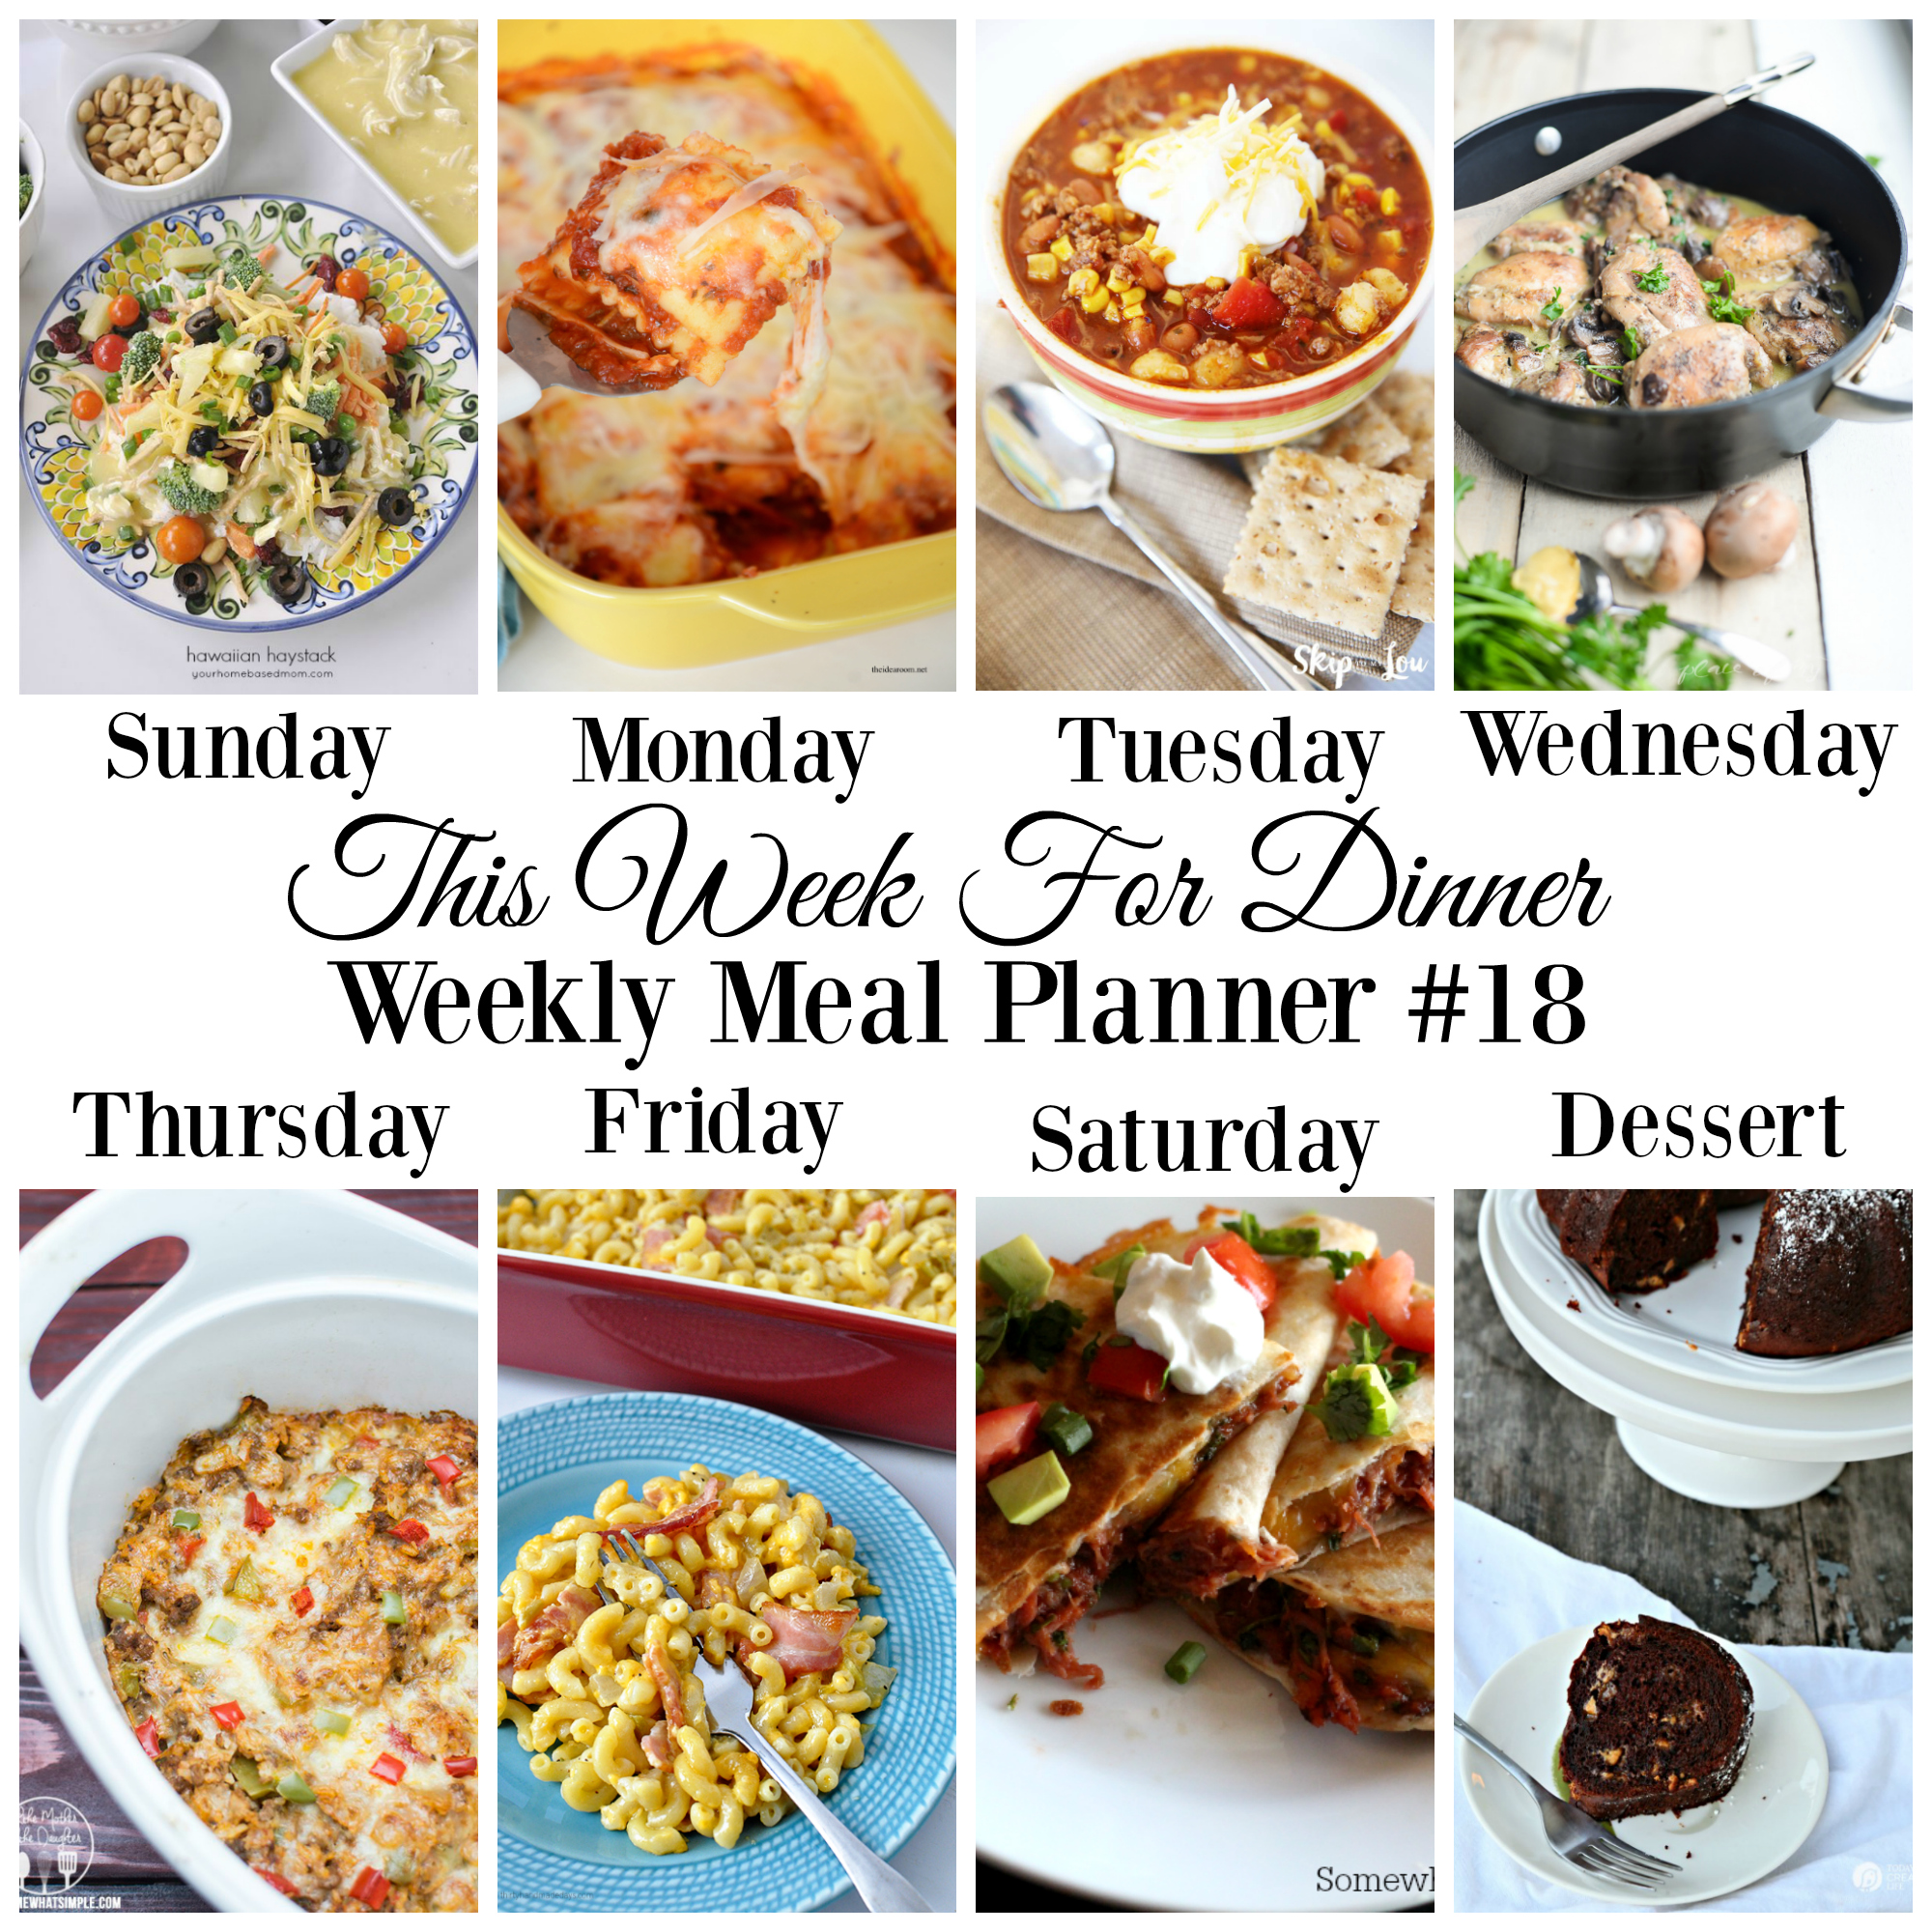 Meal planner 18